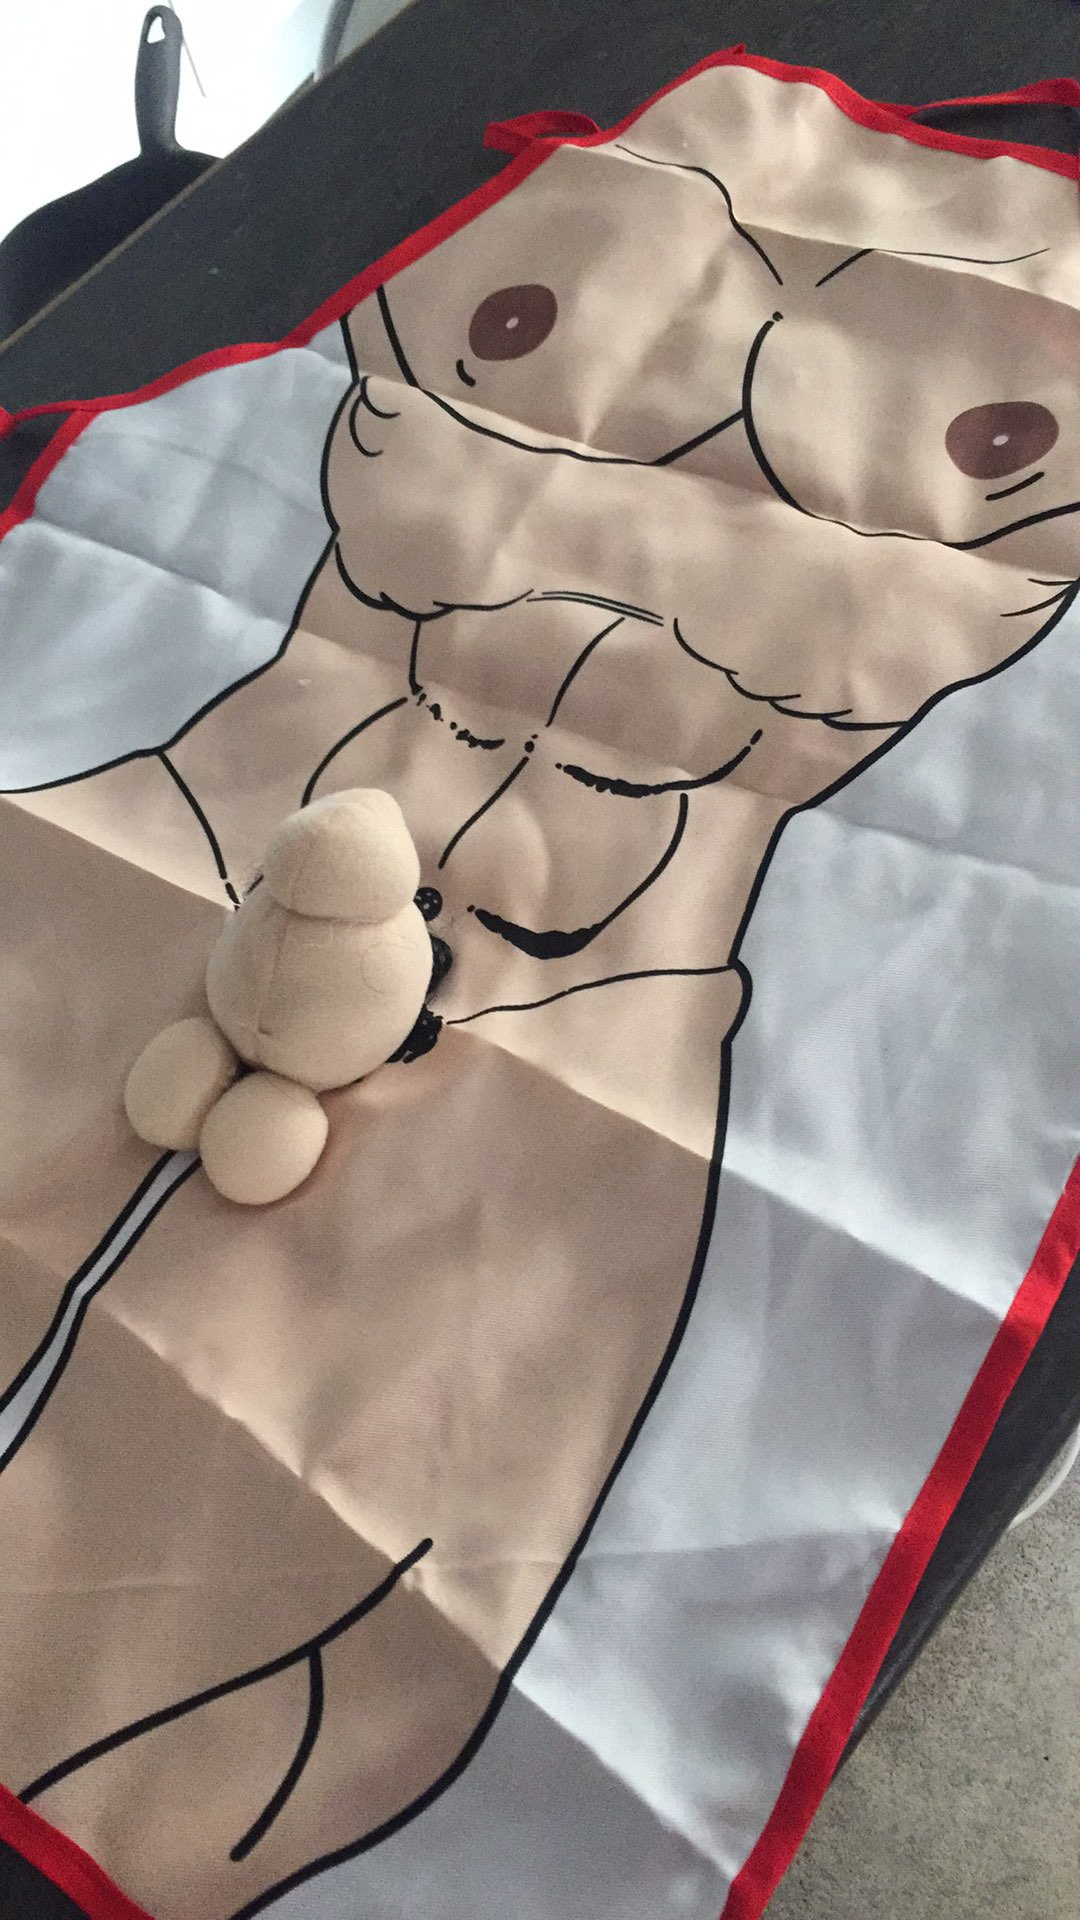 3D Sexy Kitchen Nudity Apron photo review